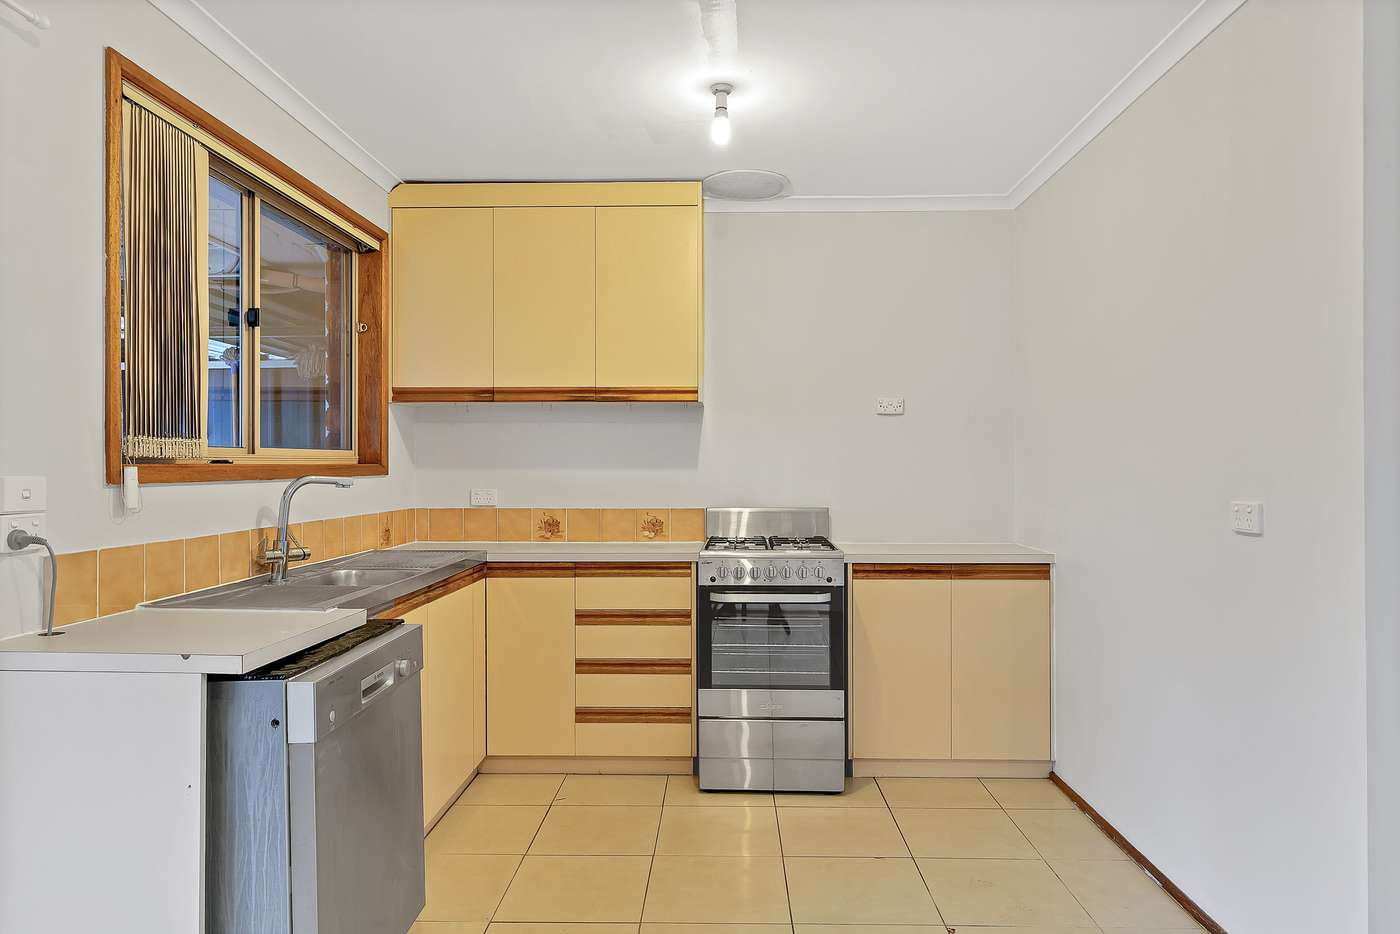 Seventh view of Homely house listing, 28 McInerney Court, Andrews Farm SA 5114